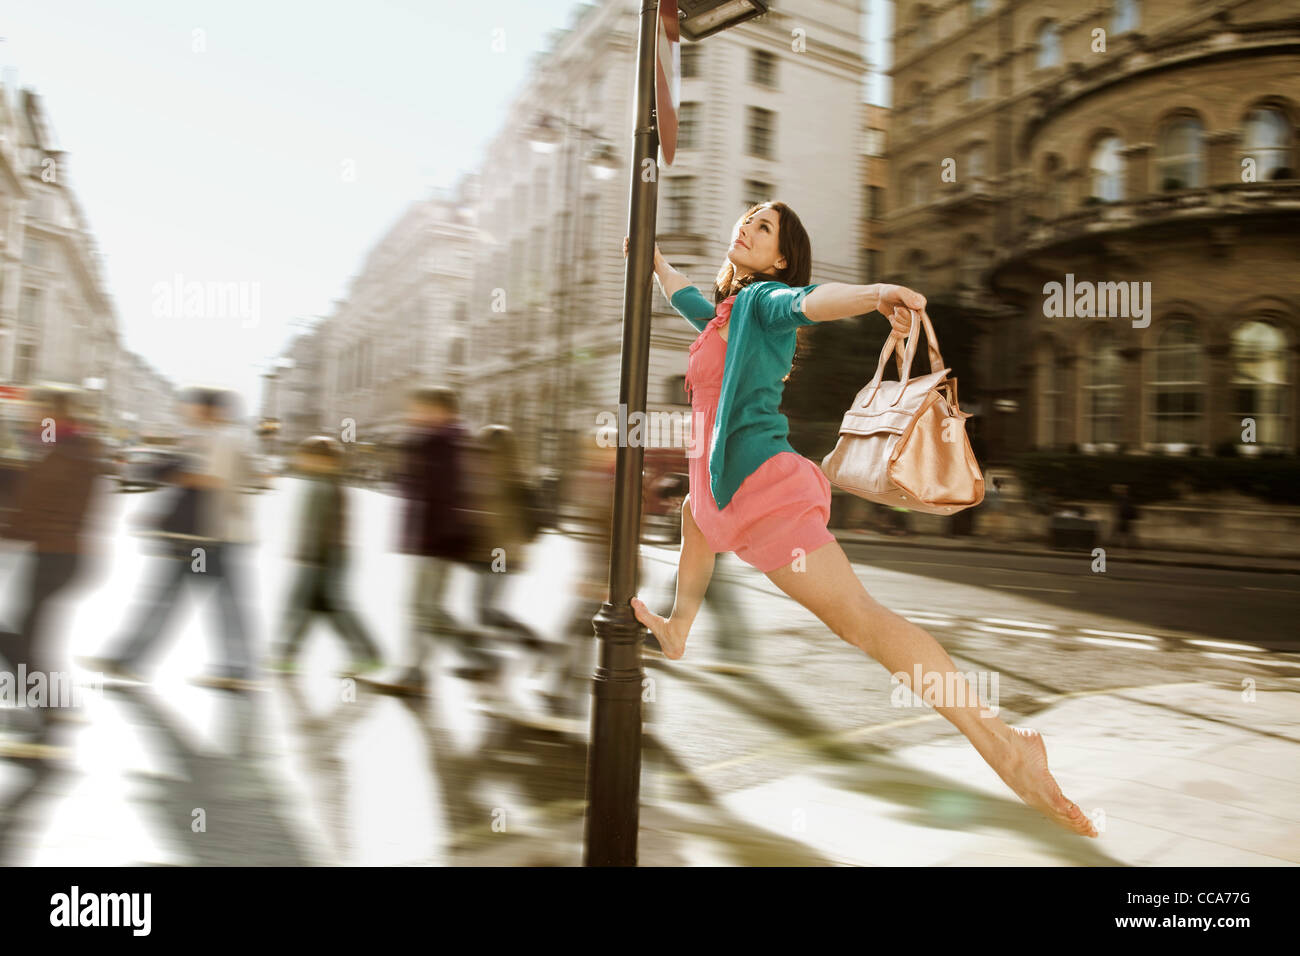 Mid adult woman in robe rose sautant à travers les rues de la ville Photo Stock